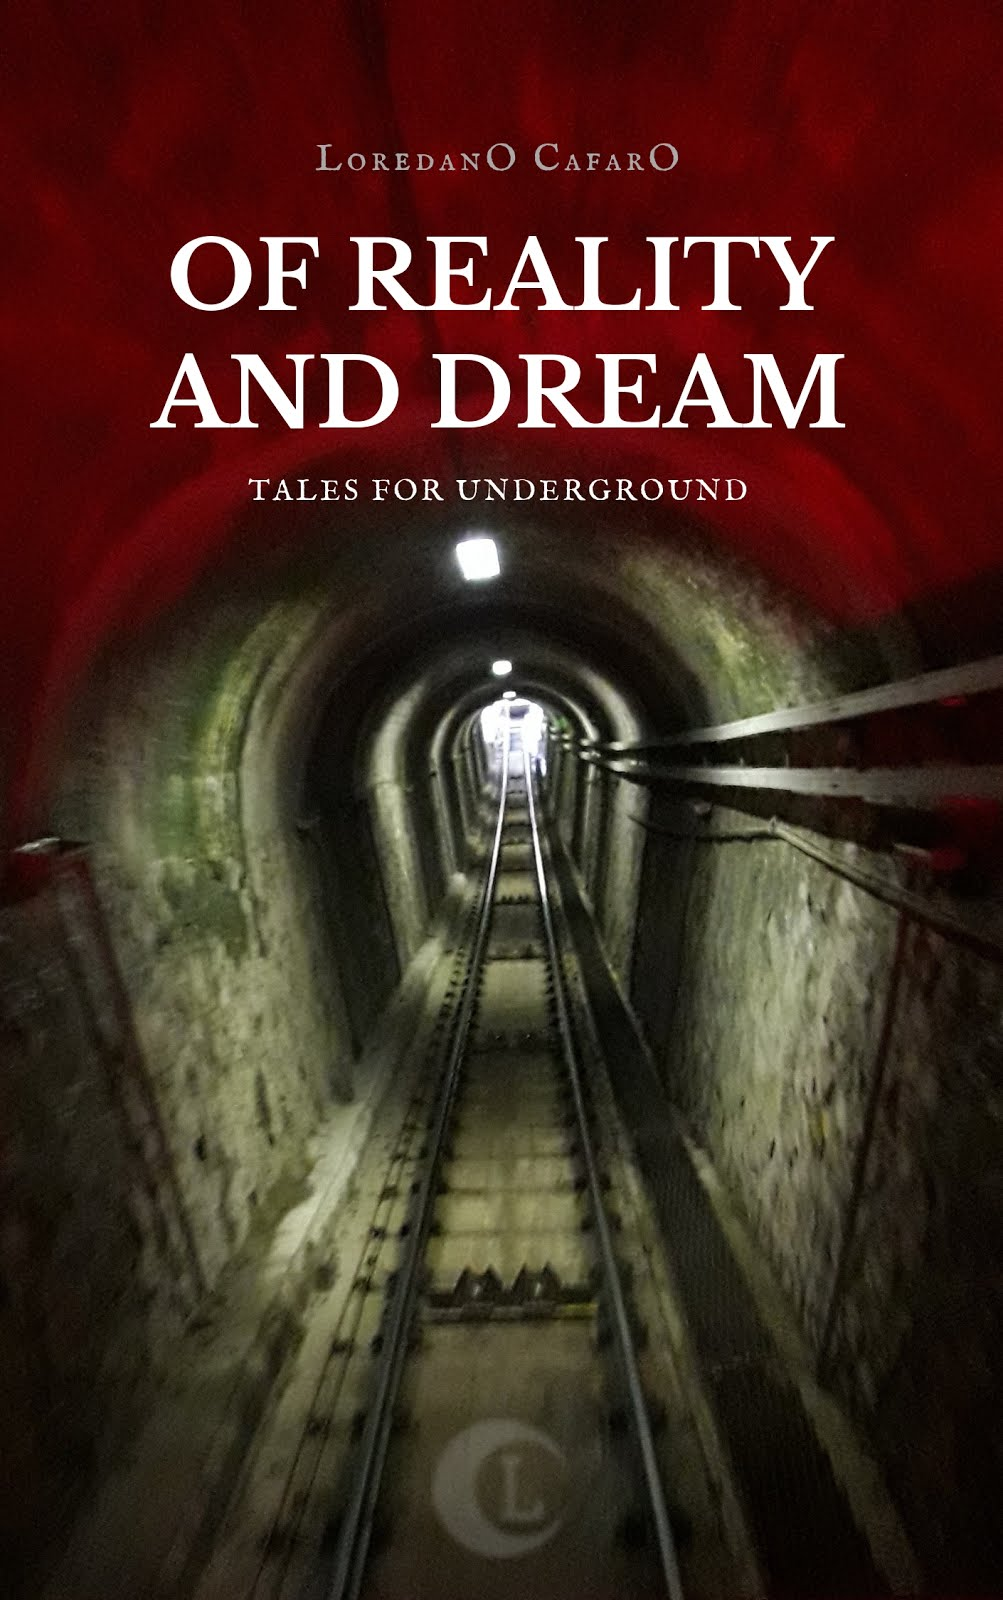 WATCH BOOK TRAILER FOR 'OF REALITY AND DREAM: TALES FOR UNDERGROUND